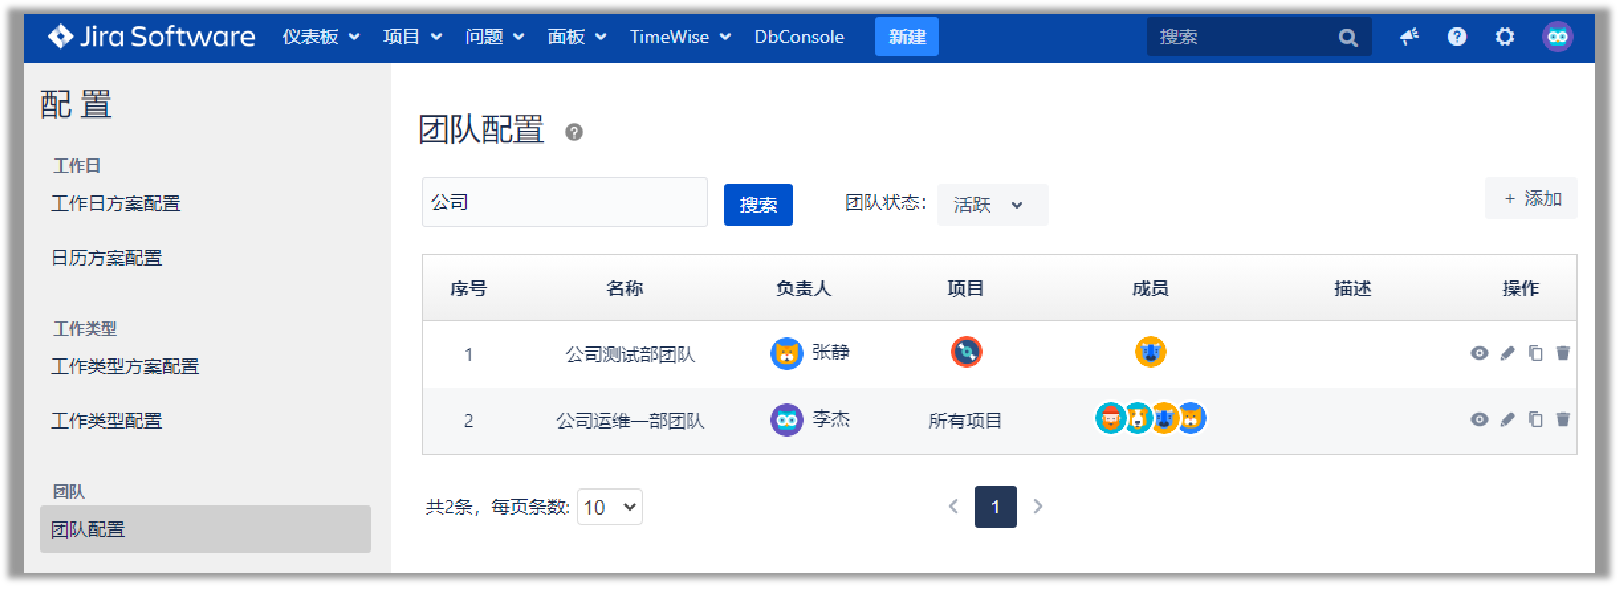 timewise report interface 6